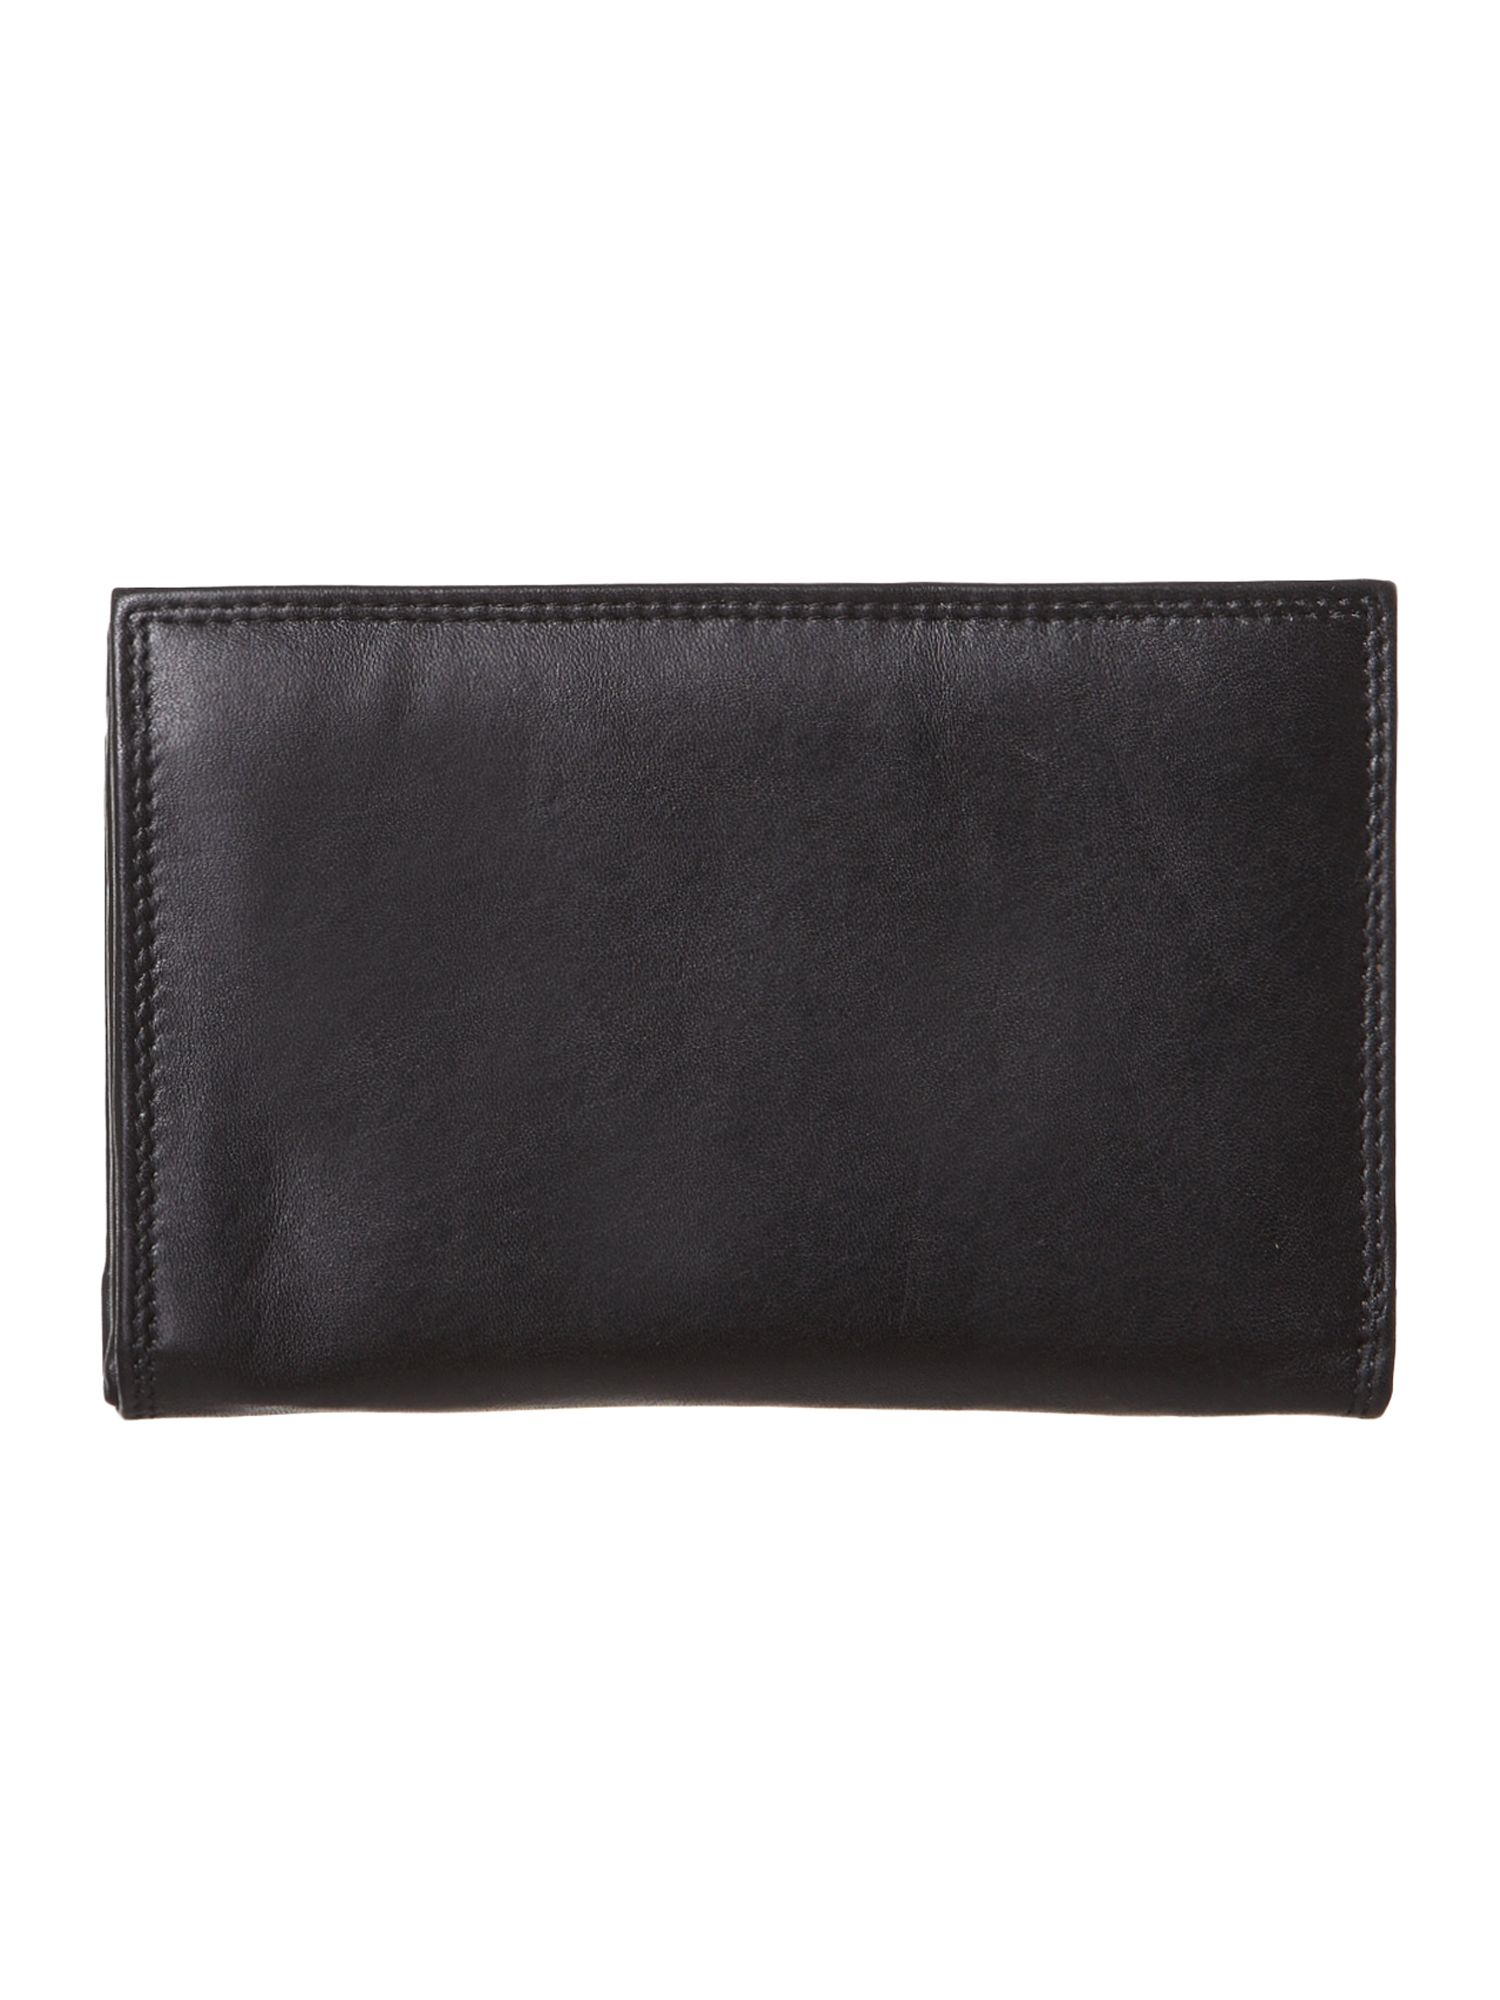 Black medium flap over purse